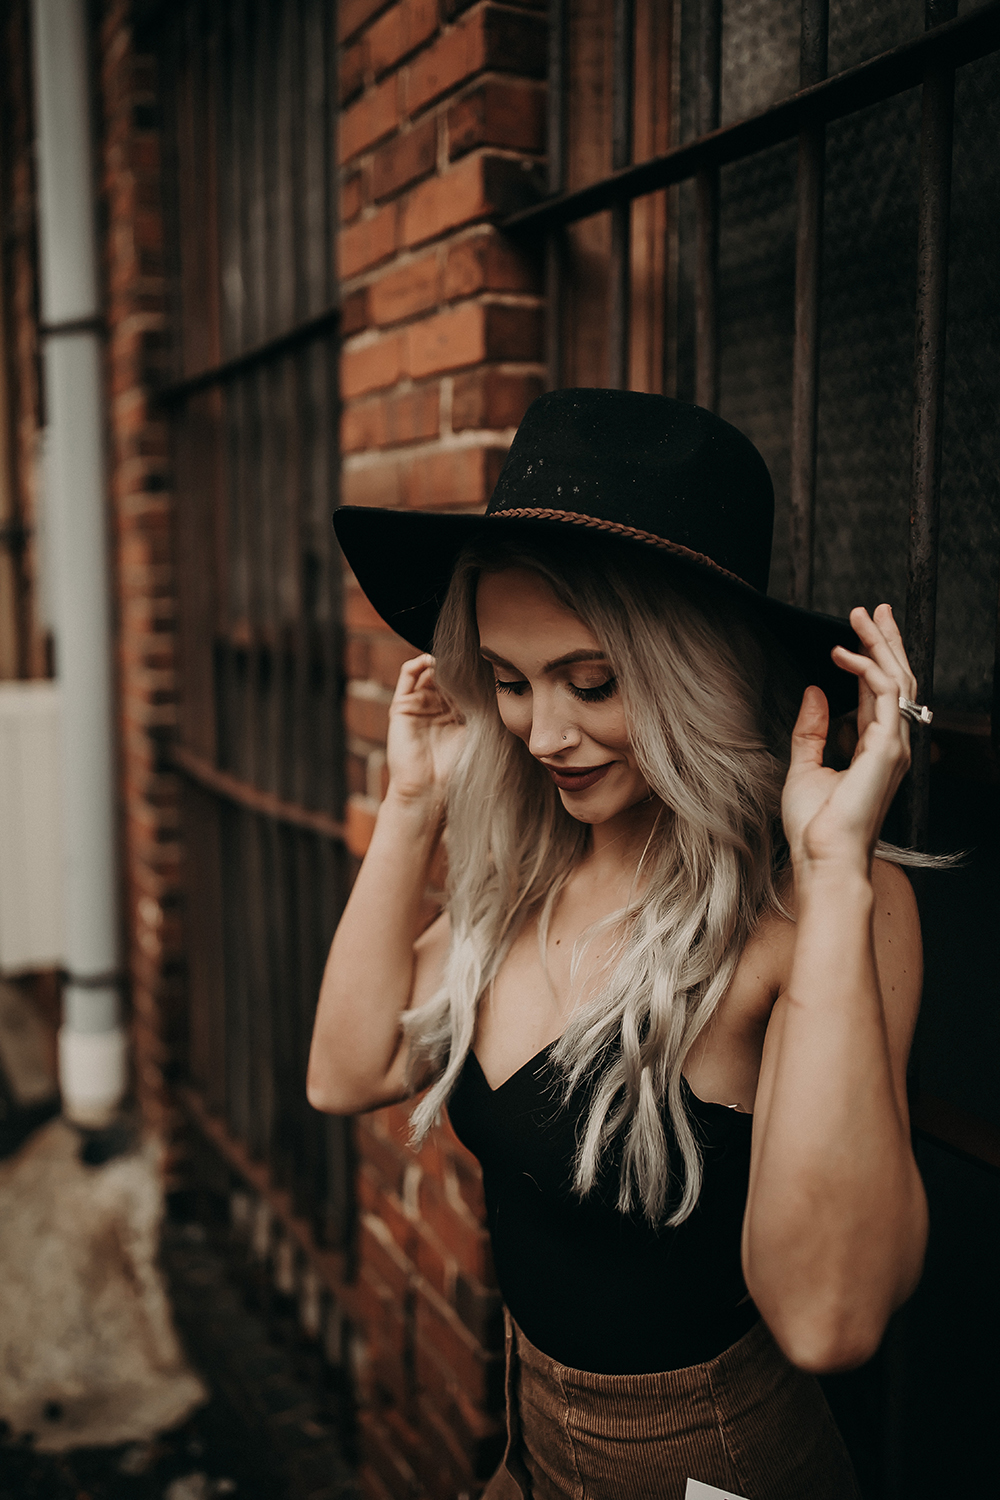 Beautiful Woman in a Fashionable Hat